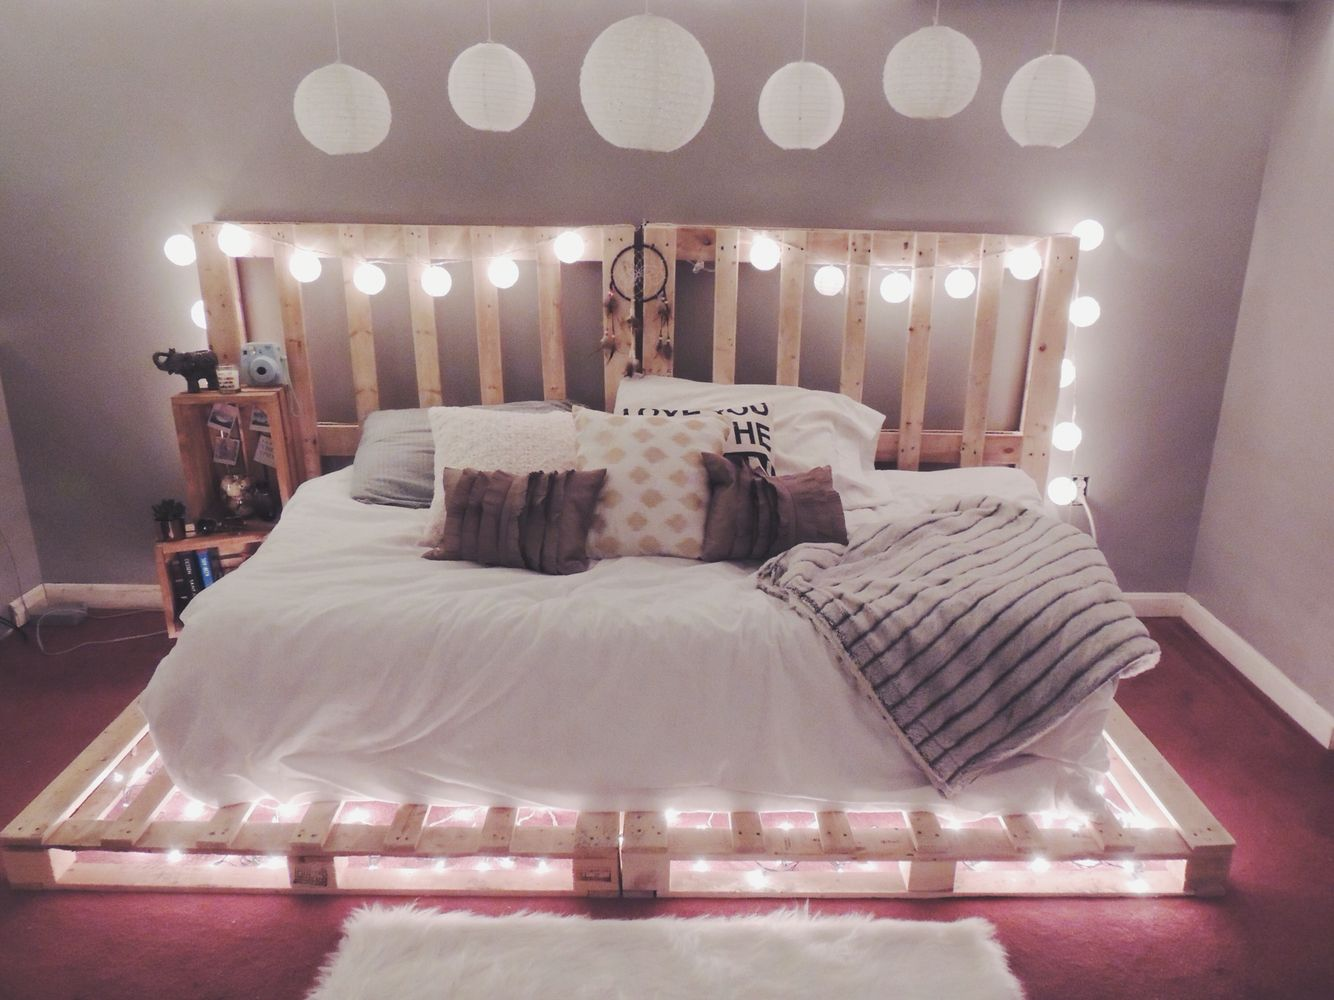 Pallet bed with lights - Use Some Old Pallets And Add Christmas Lights To Make Your Own Bed Frame Handmade